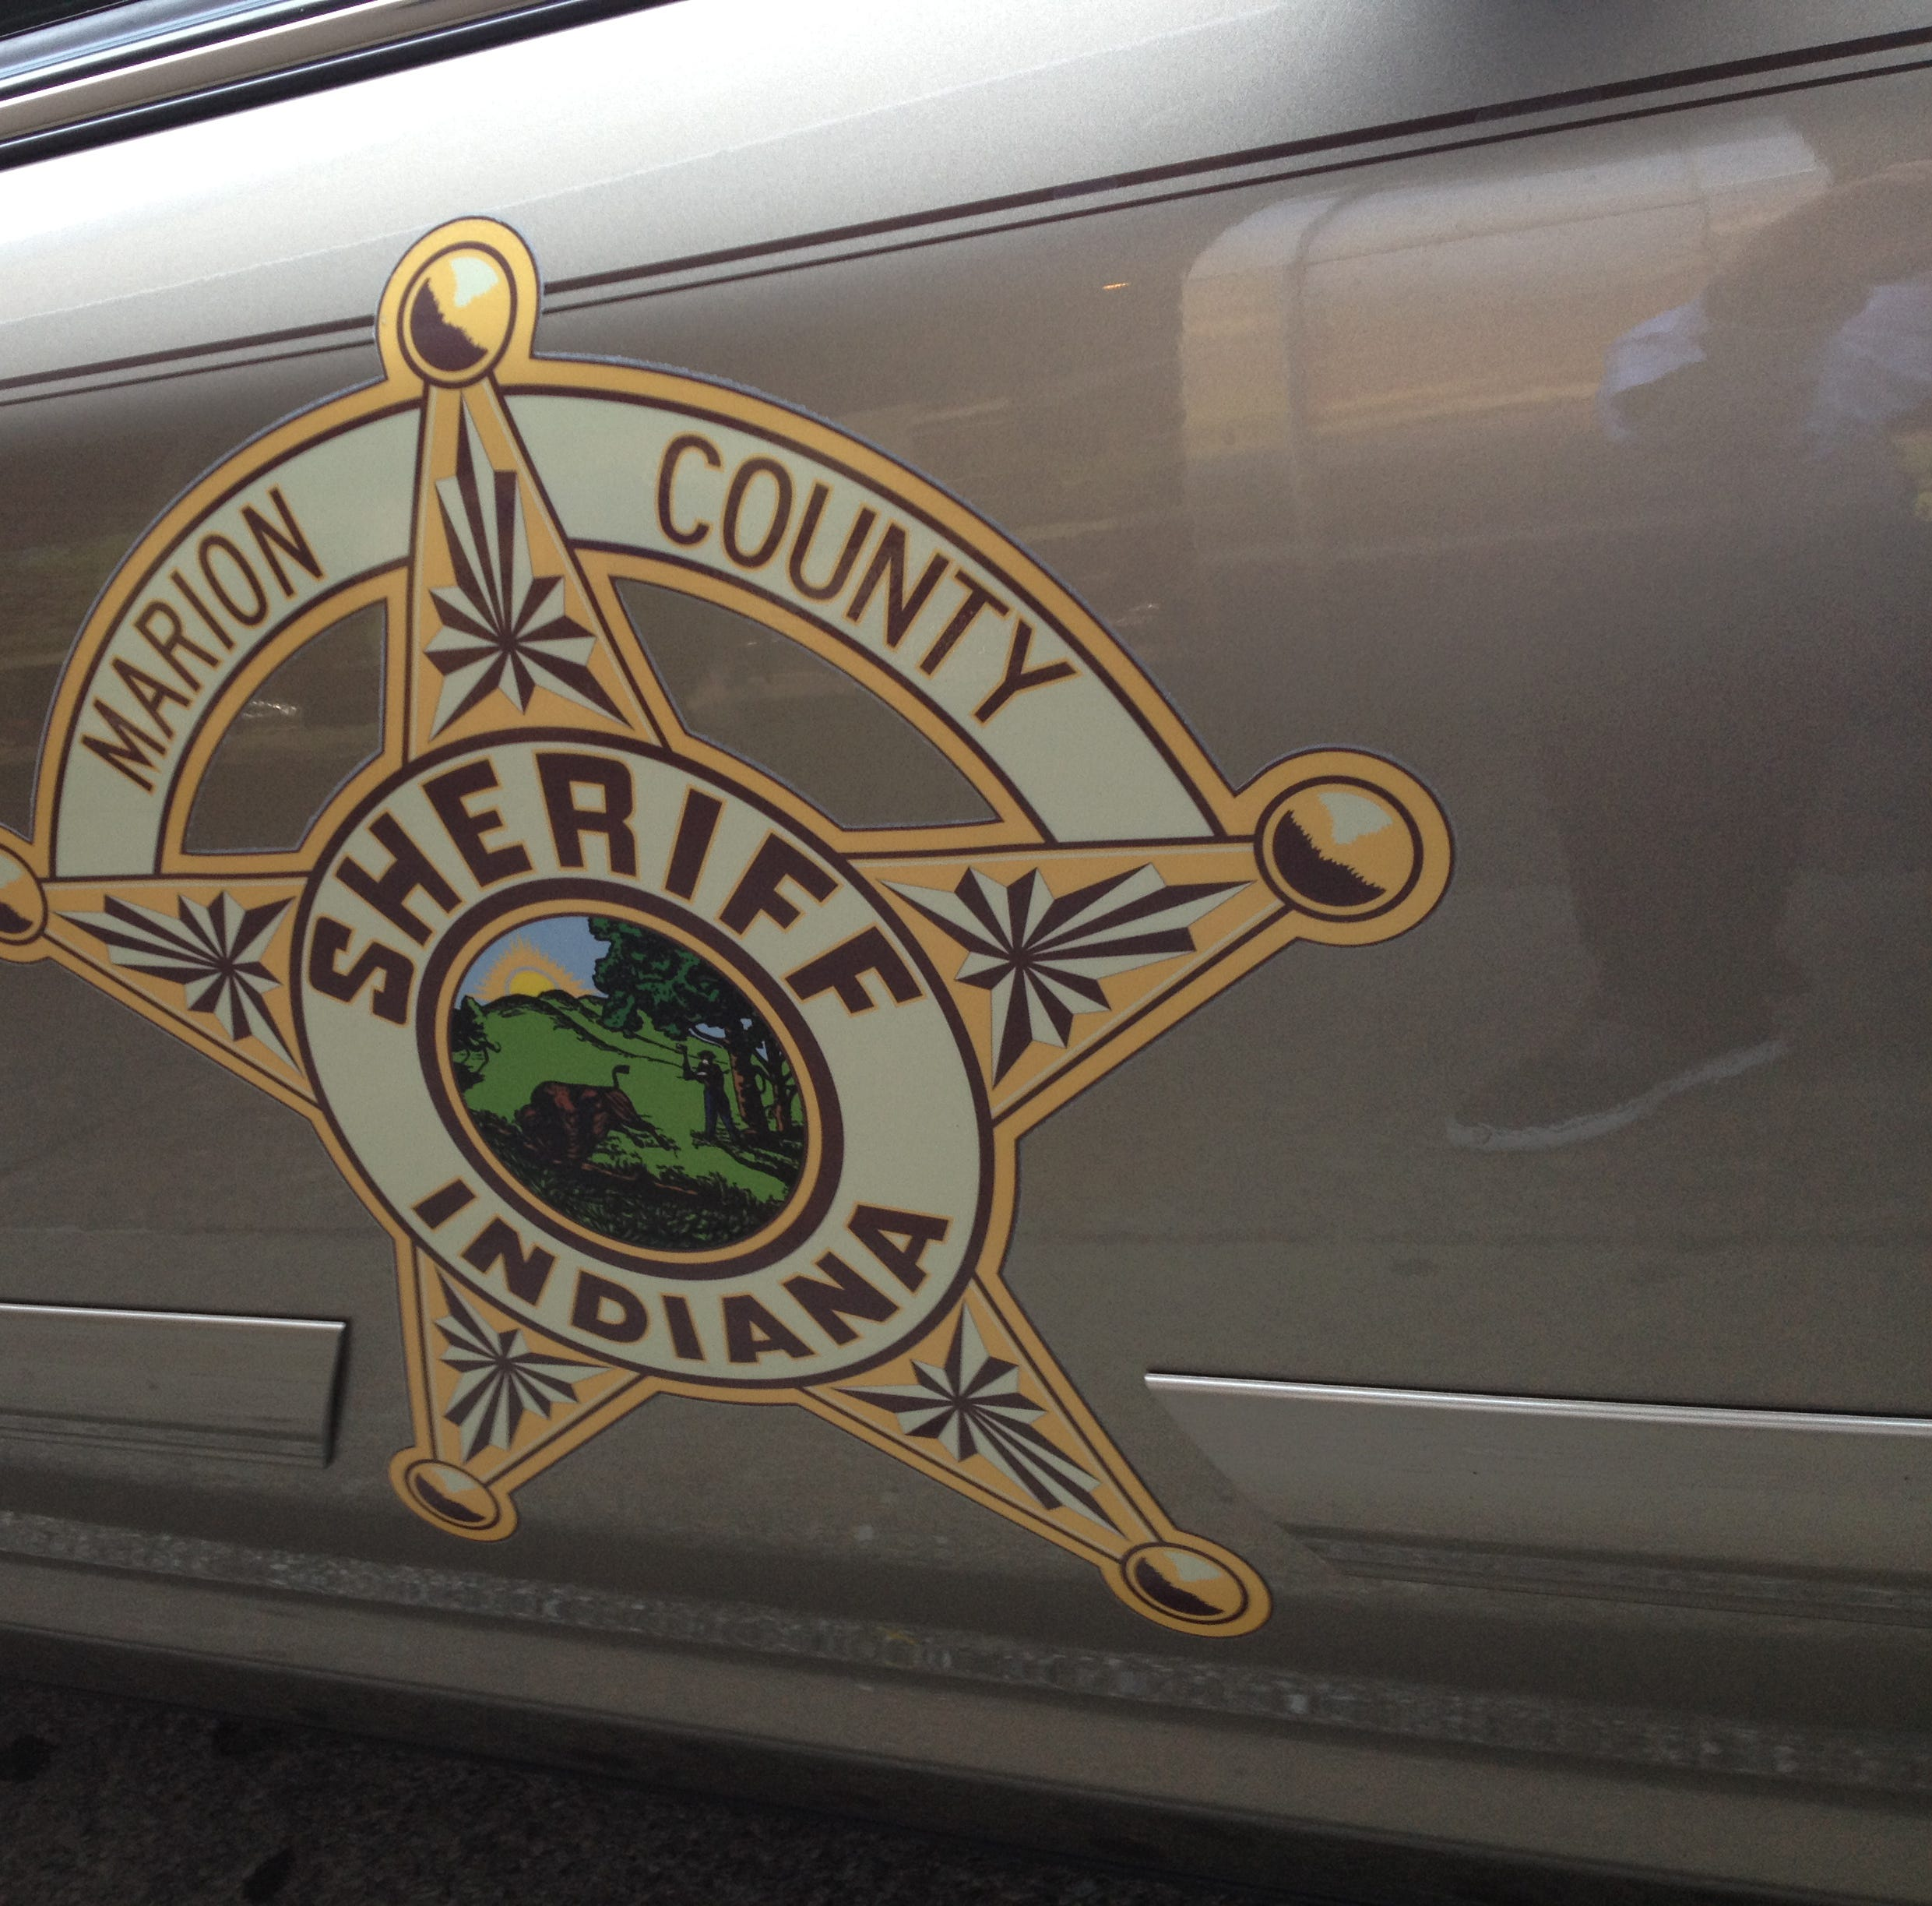 Audit: Marion County Sheriff's Office beset by low pay, old cars and out-of-control overtime